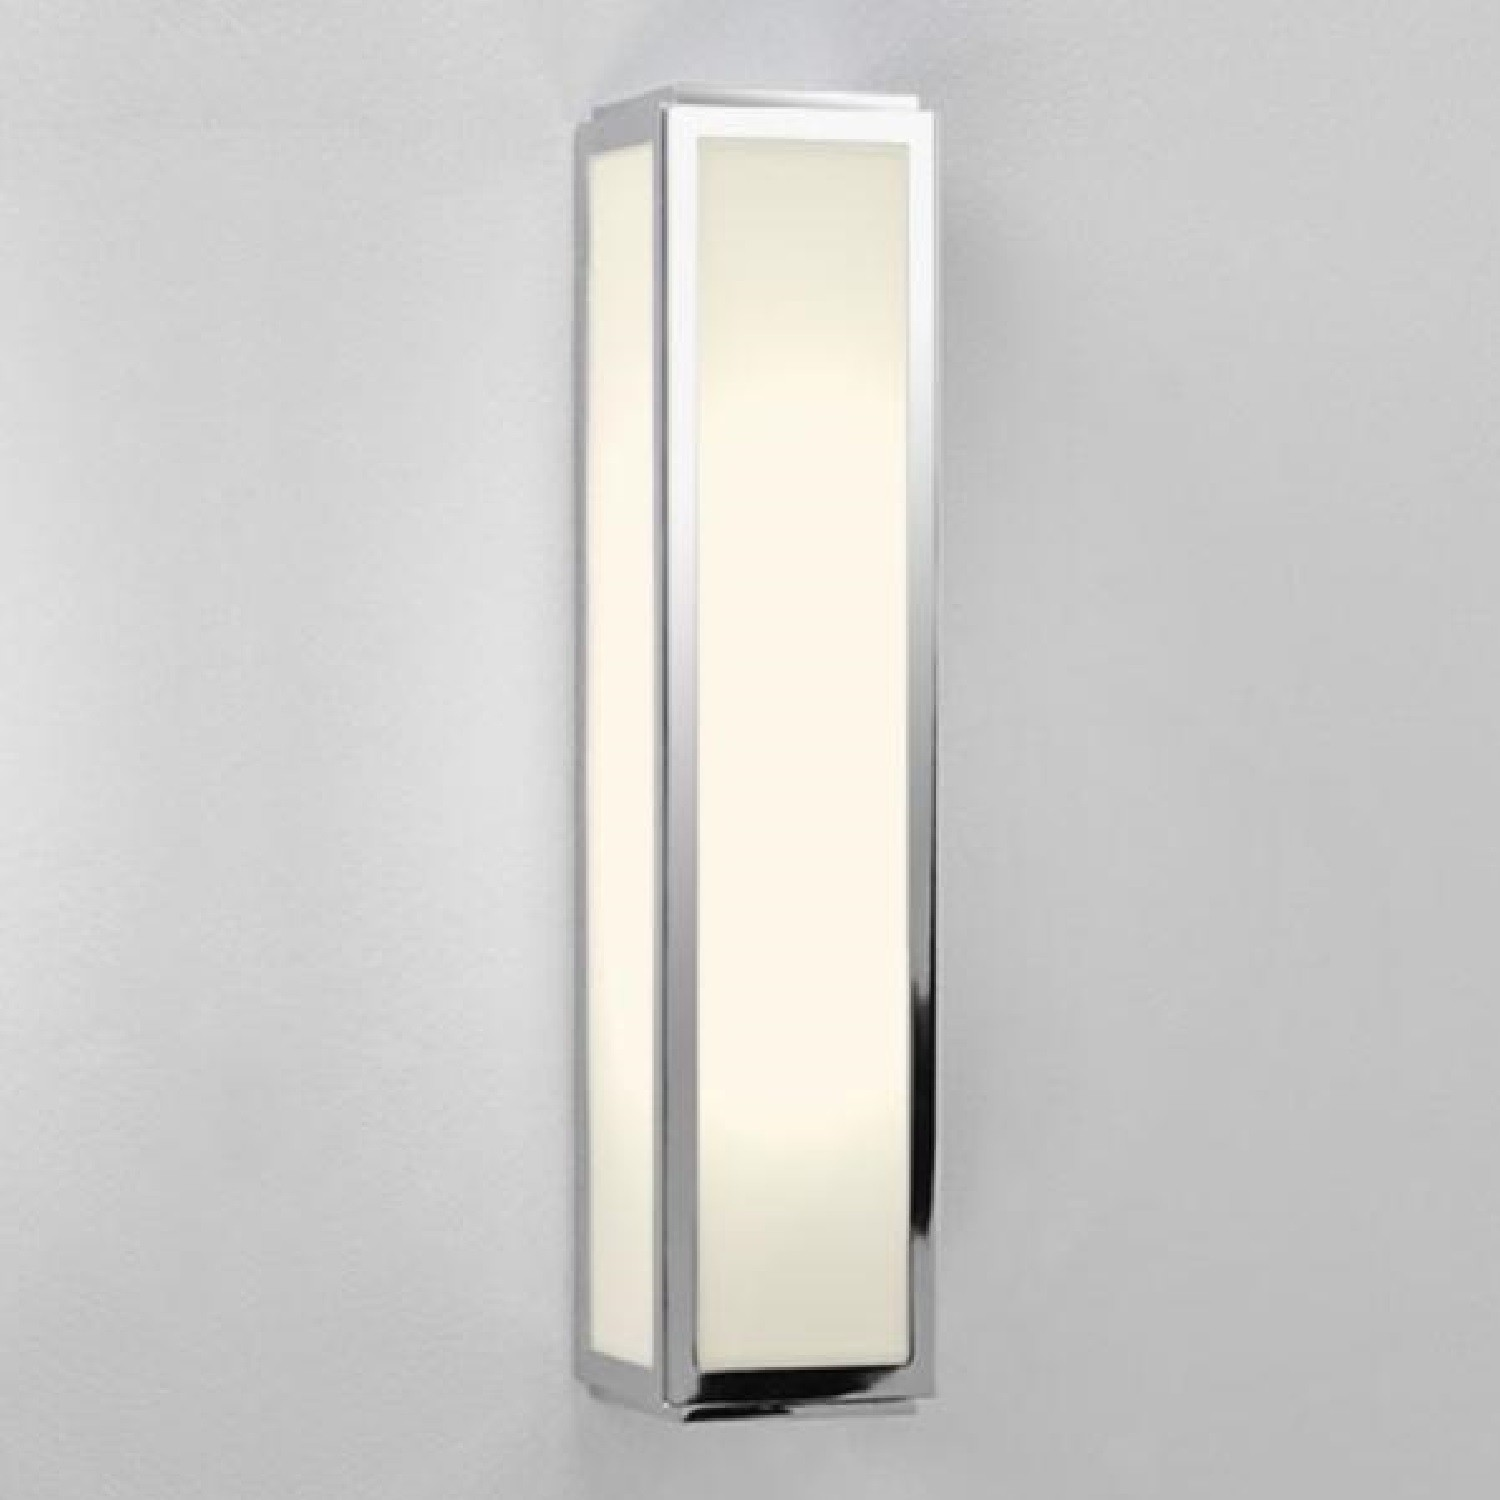 Mashiko Applique Salle de Bain LED par Astro Lighting | Eclairage de ...